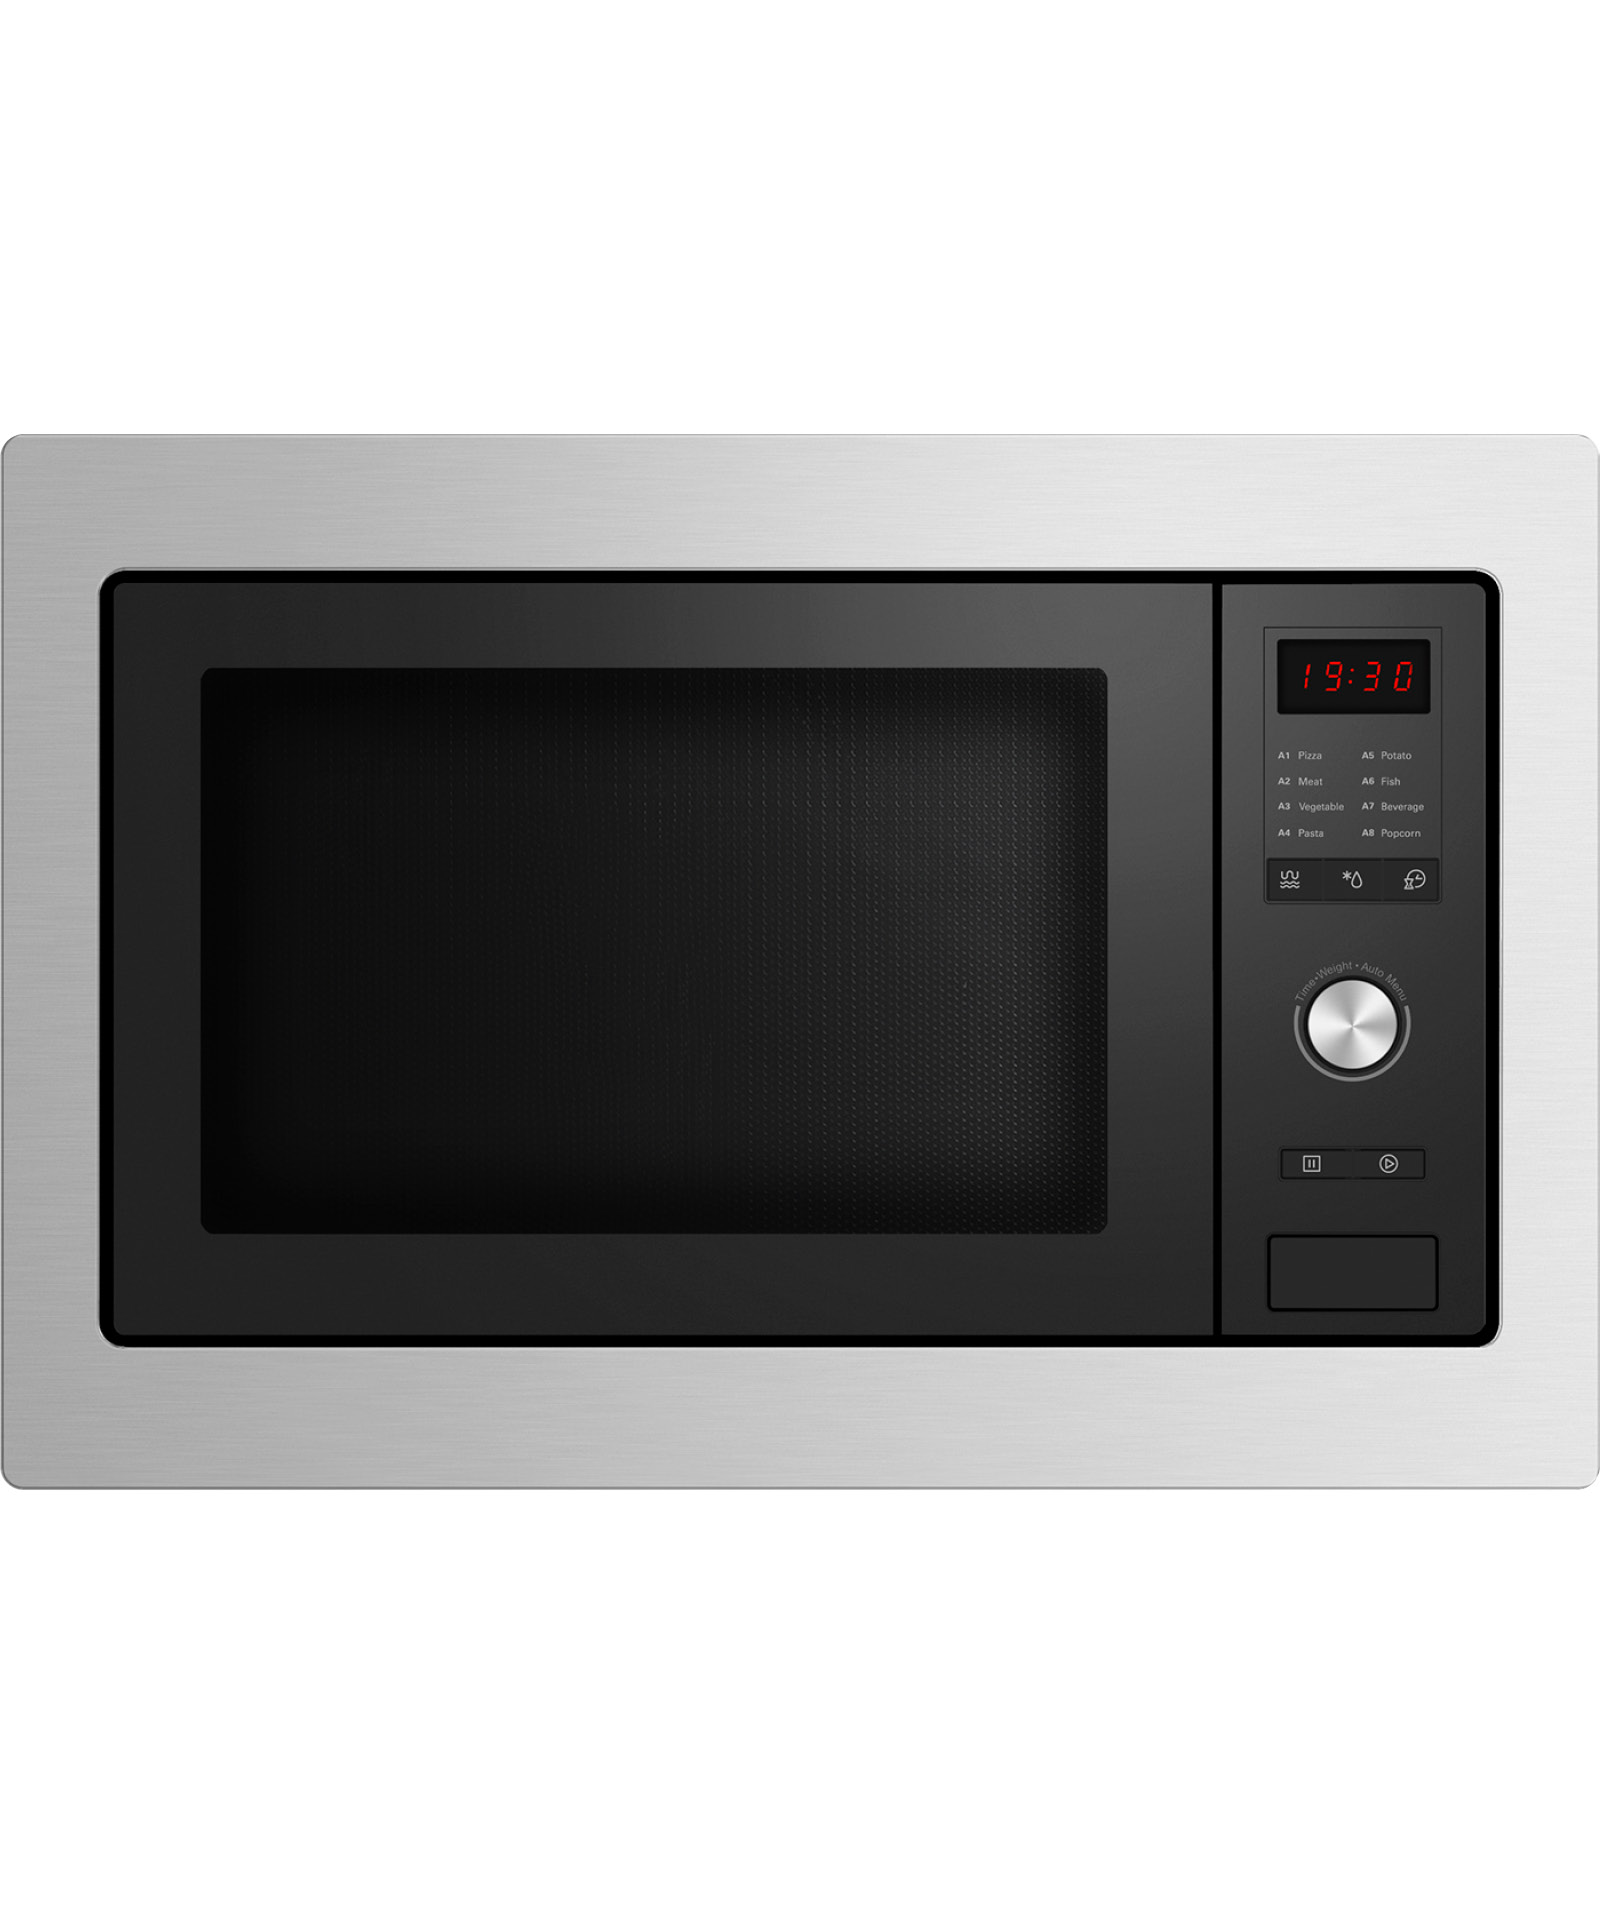 Om25blsx1 Built In Combination Microwave Oven 60cm